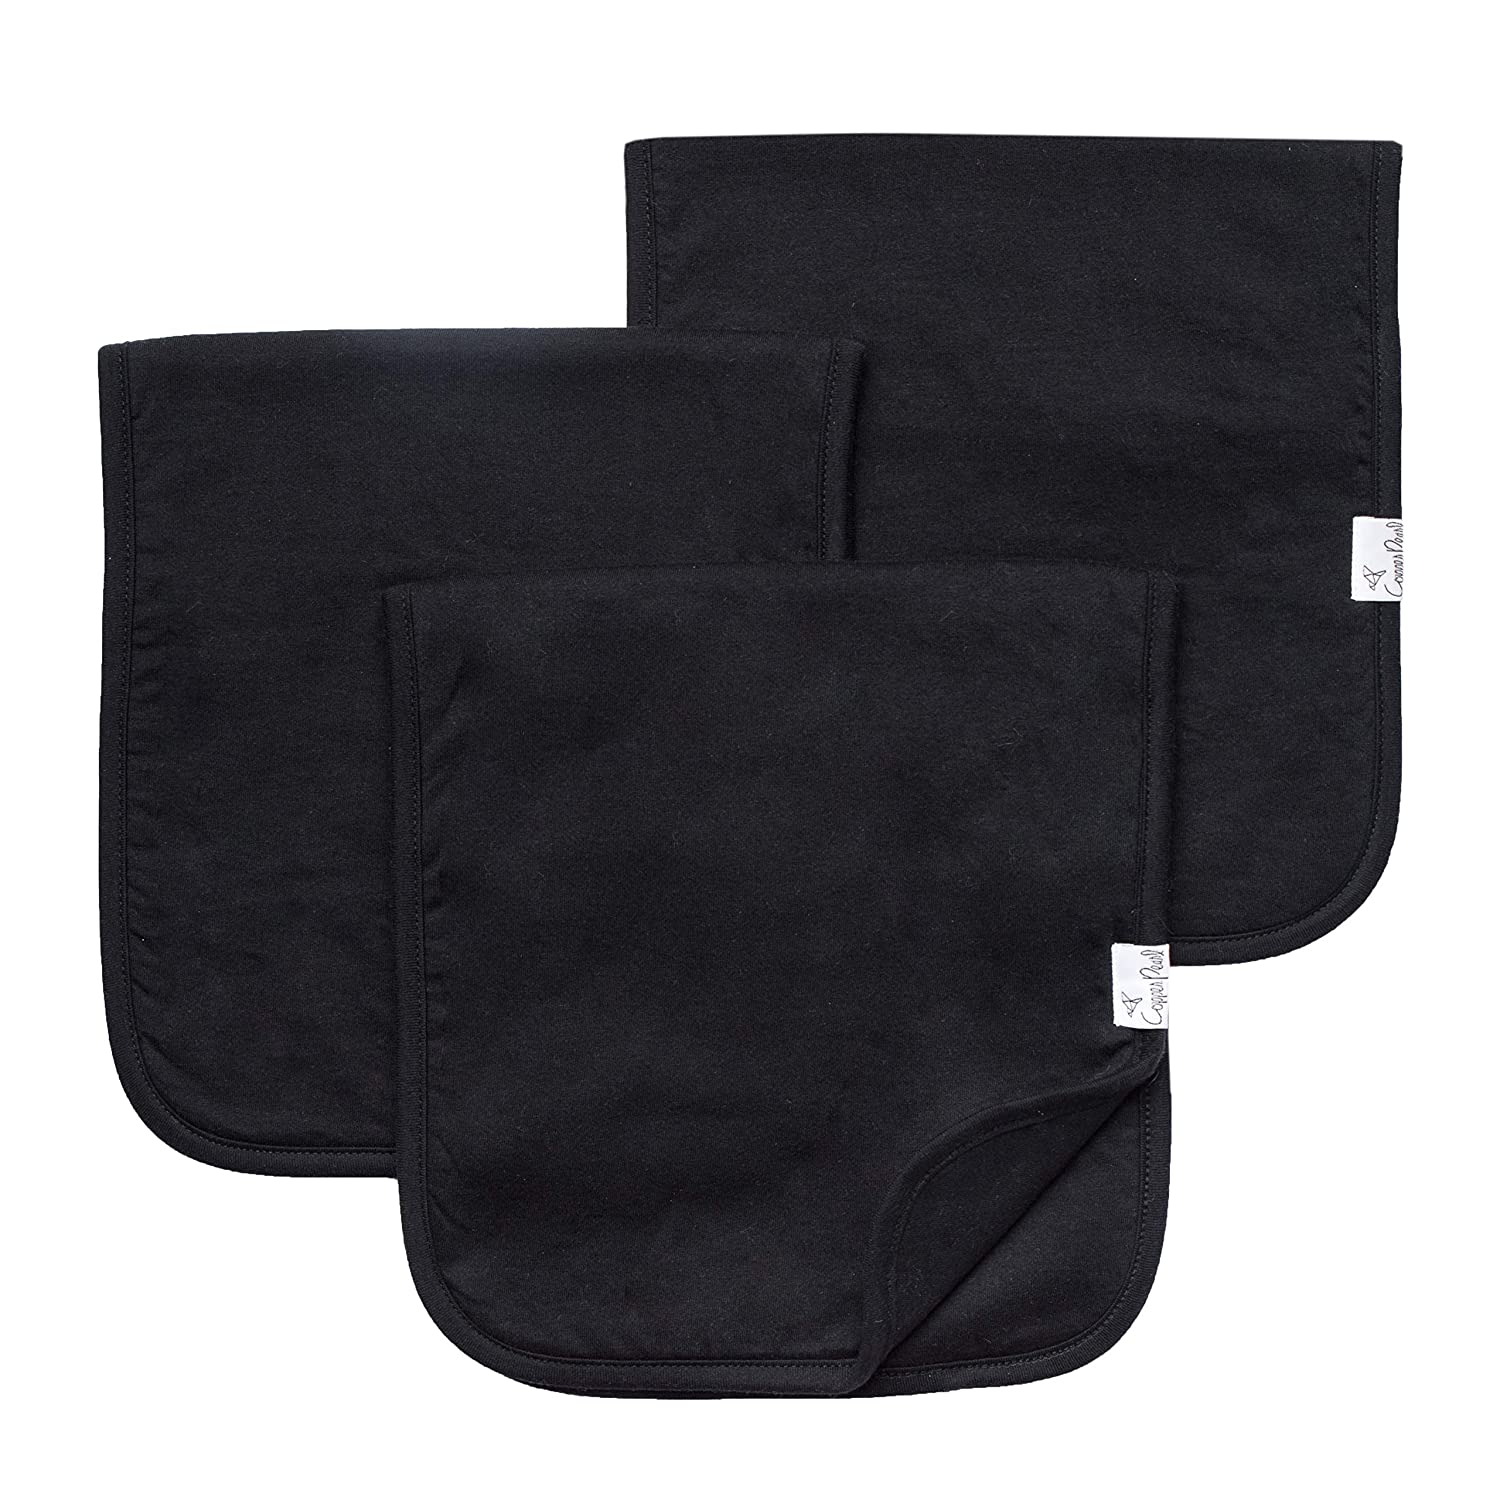 """Baby Burp Cloth Large 21x10 Size Premium Absorbent Triple Layer 3 Pack Gift Set /""""Black Basics/"""" by Copper Pearl"""